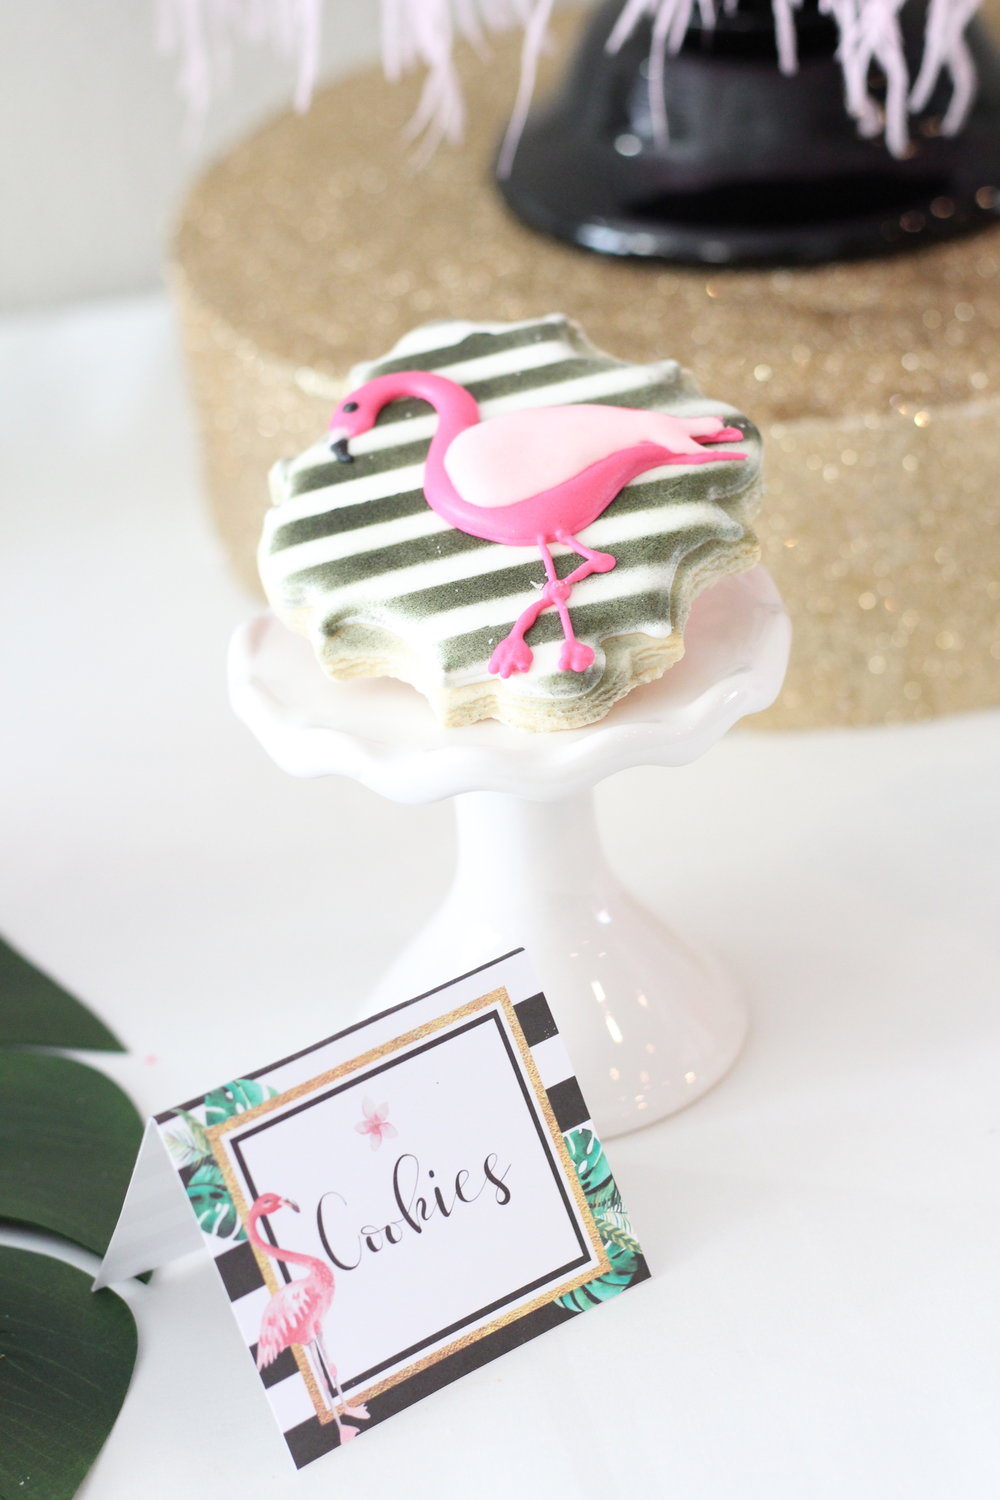 Party Inspiration for a Let's Flamingo Bachelorette Party or Bridal Shower - a fun flamingo party theme in pink, white, black, green and gold. Kate Spade Inspired Flamingo Cookies. As seen on www.BrendasWeddingBlog.com  Write here...